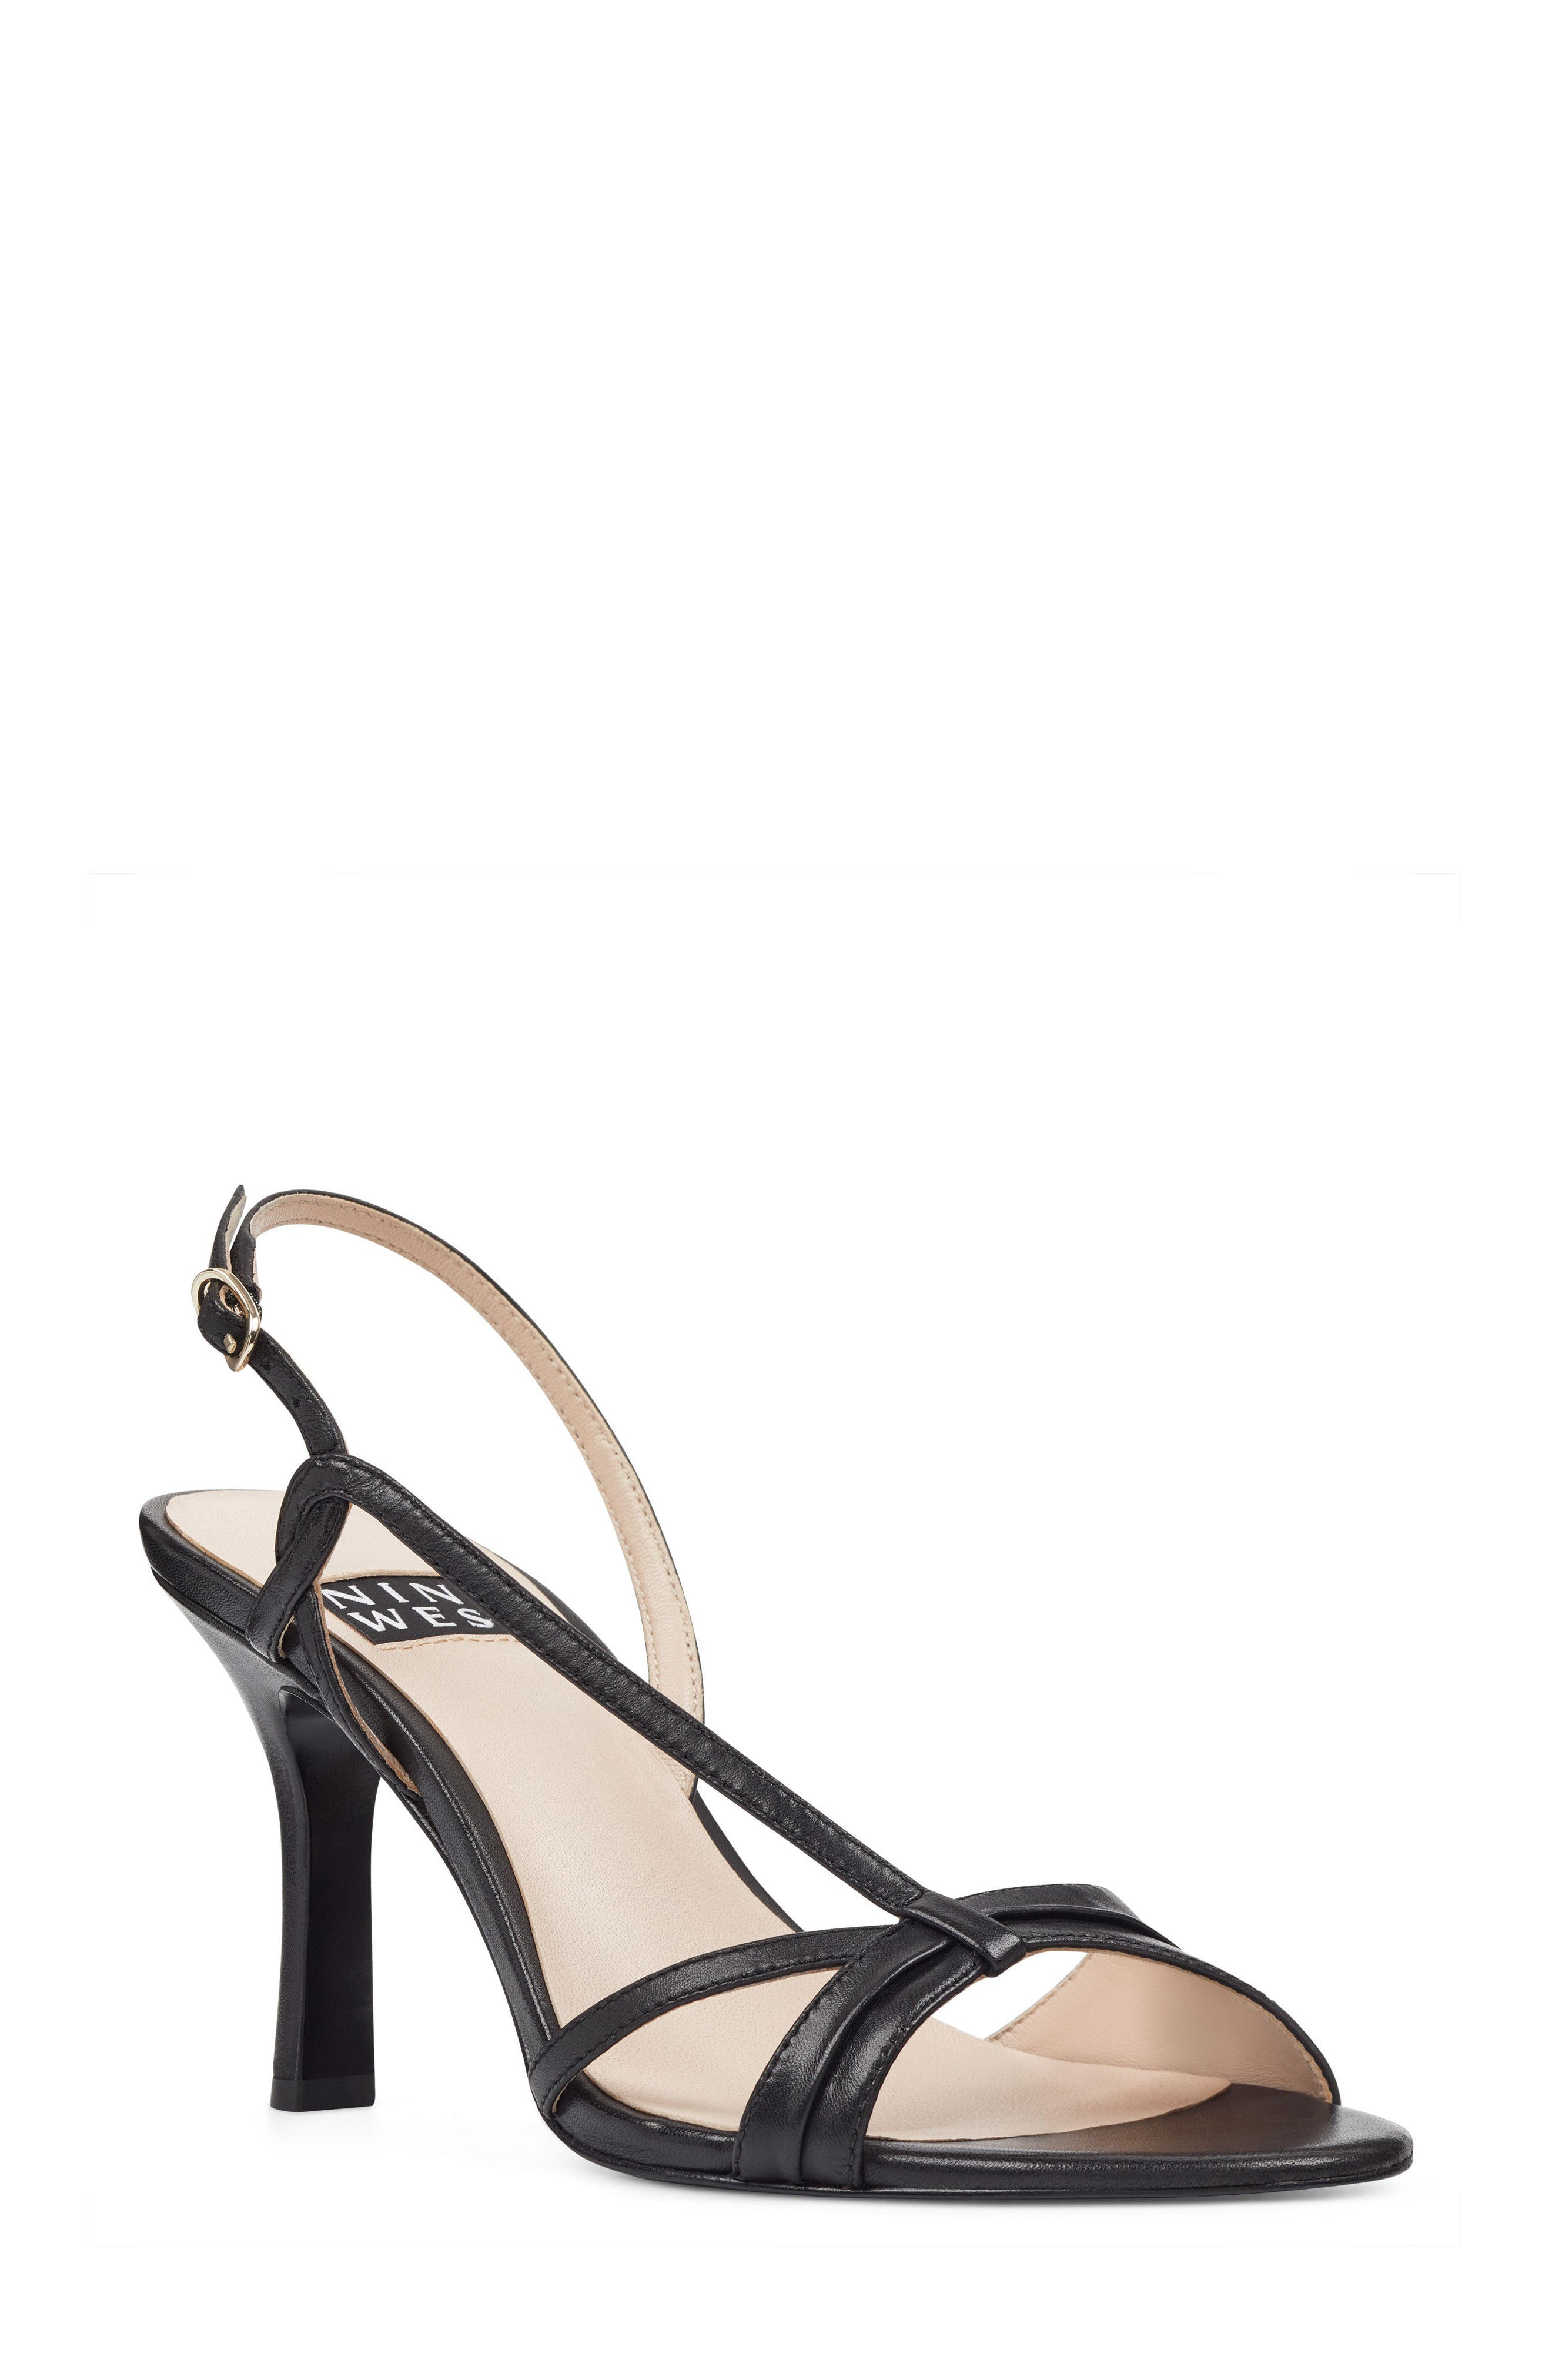 Accolia - 40th Anniversary Capsule Collection Sandal,                             Main thumbnail 1, color,                             BLACK LEATHER